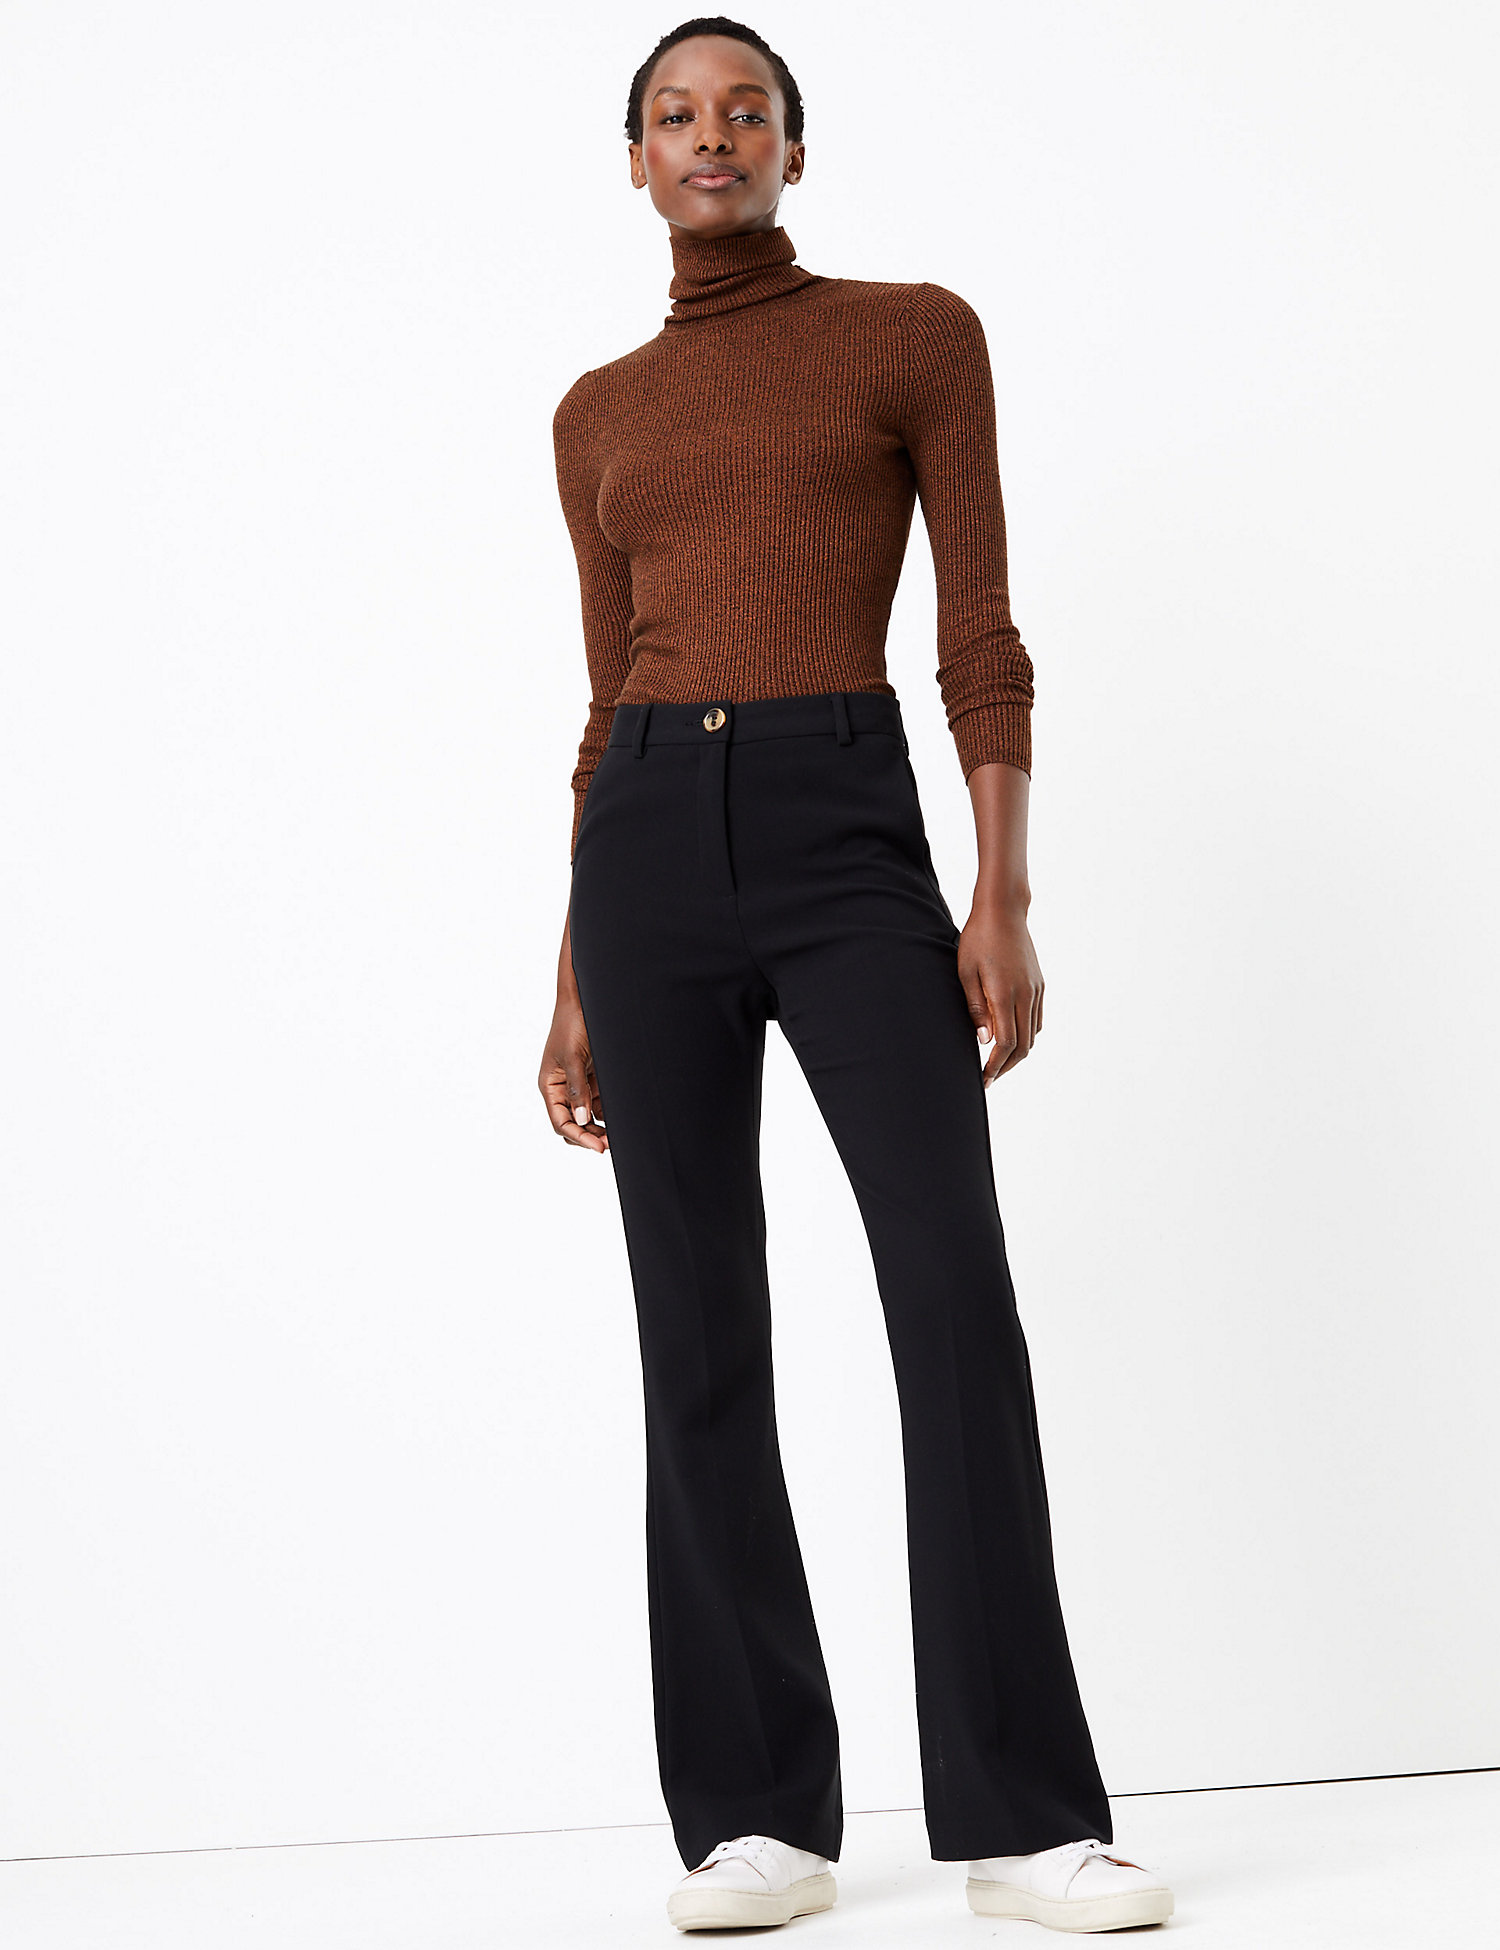 M&S High Waisted Flare trousers £35